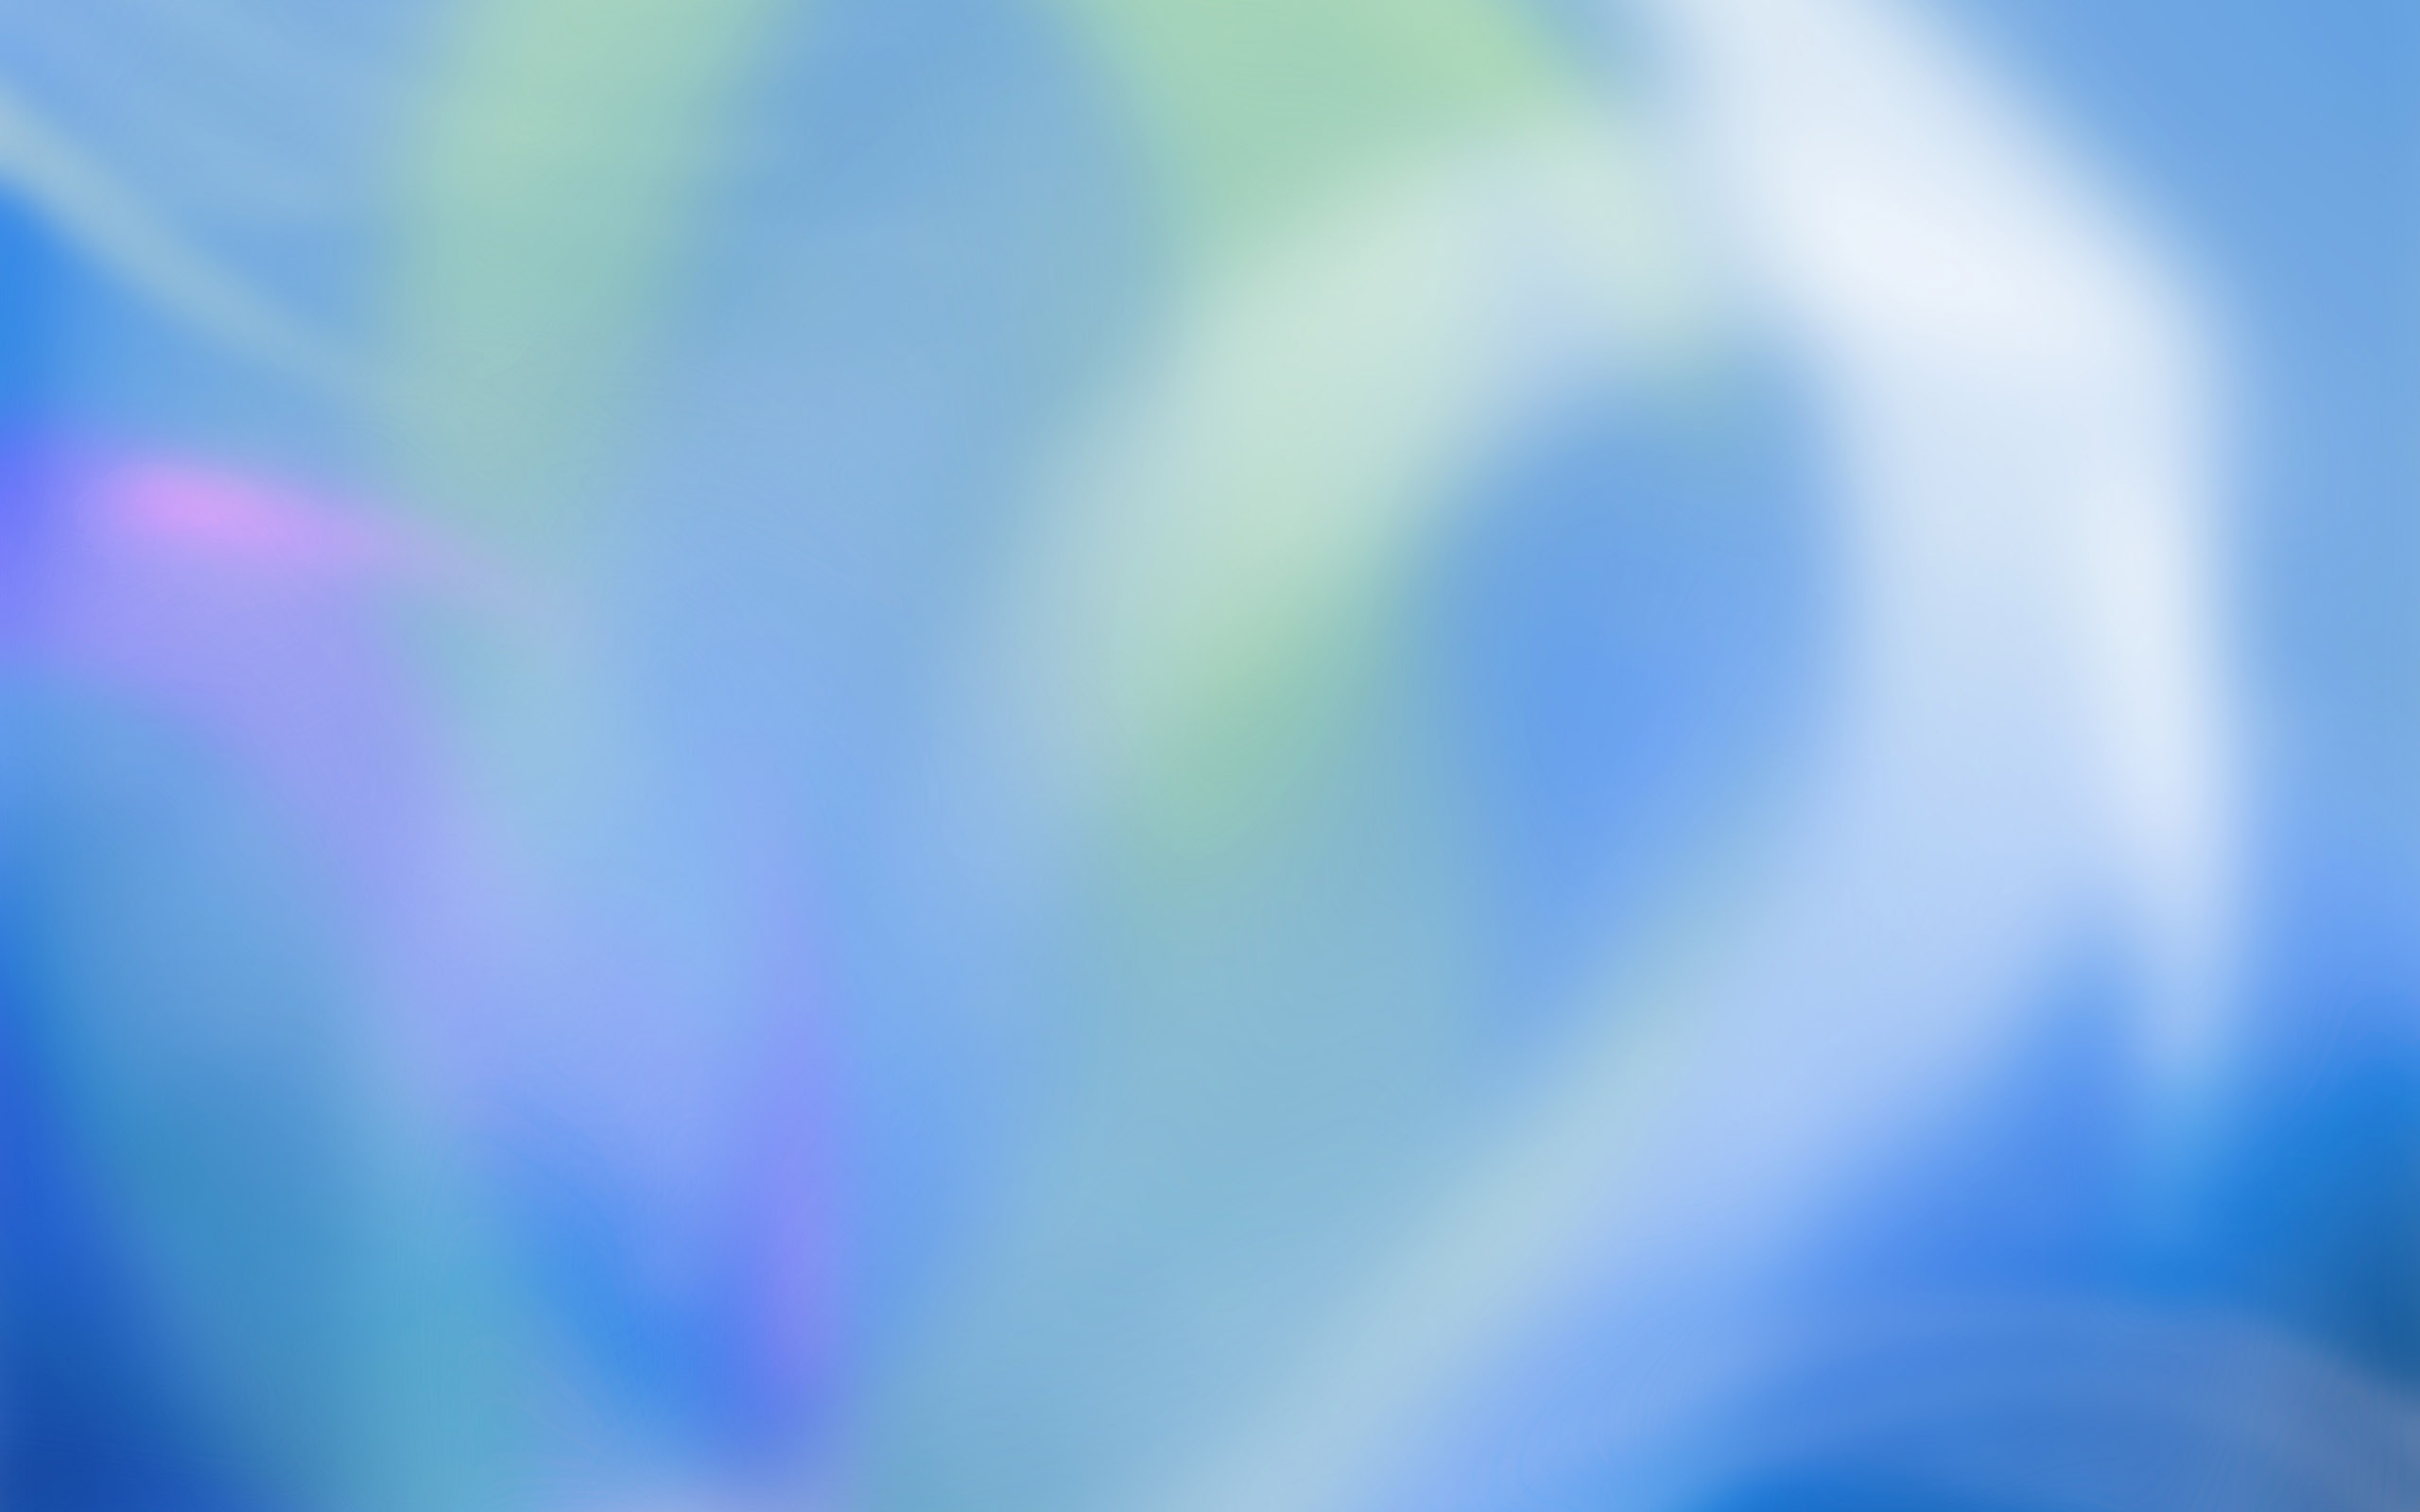 Blue Gradient Background Wallpaper 2560x1600